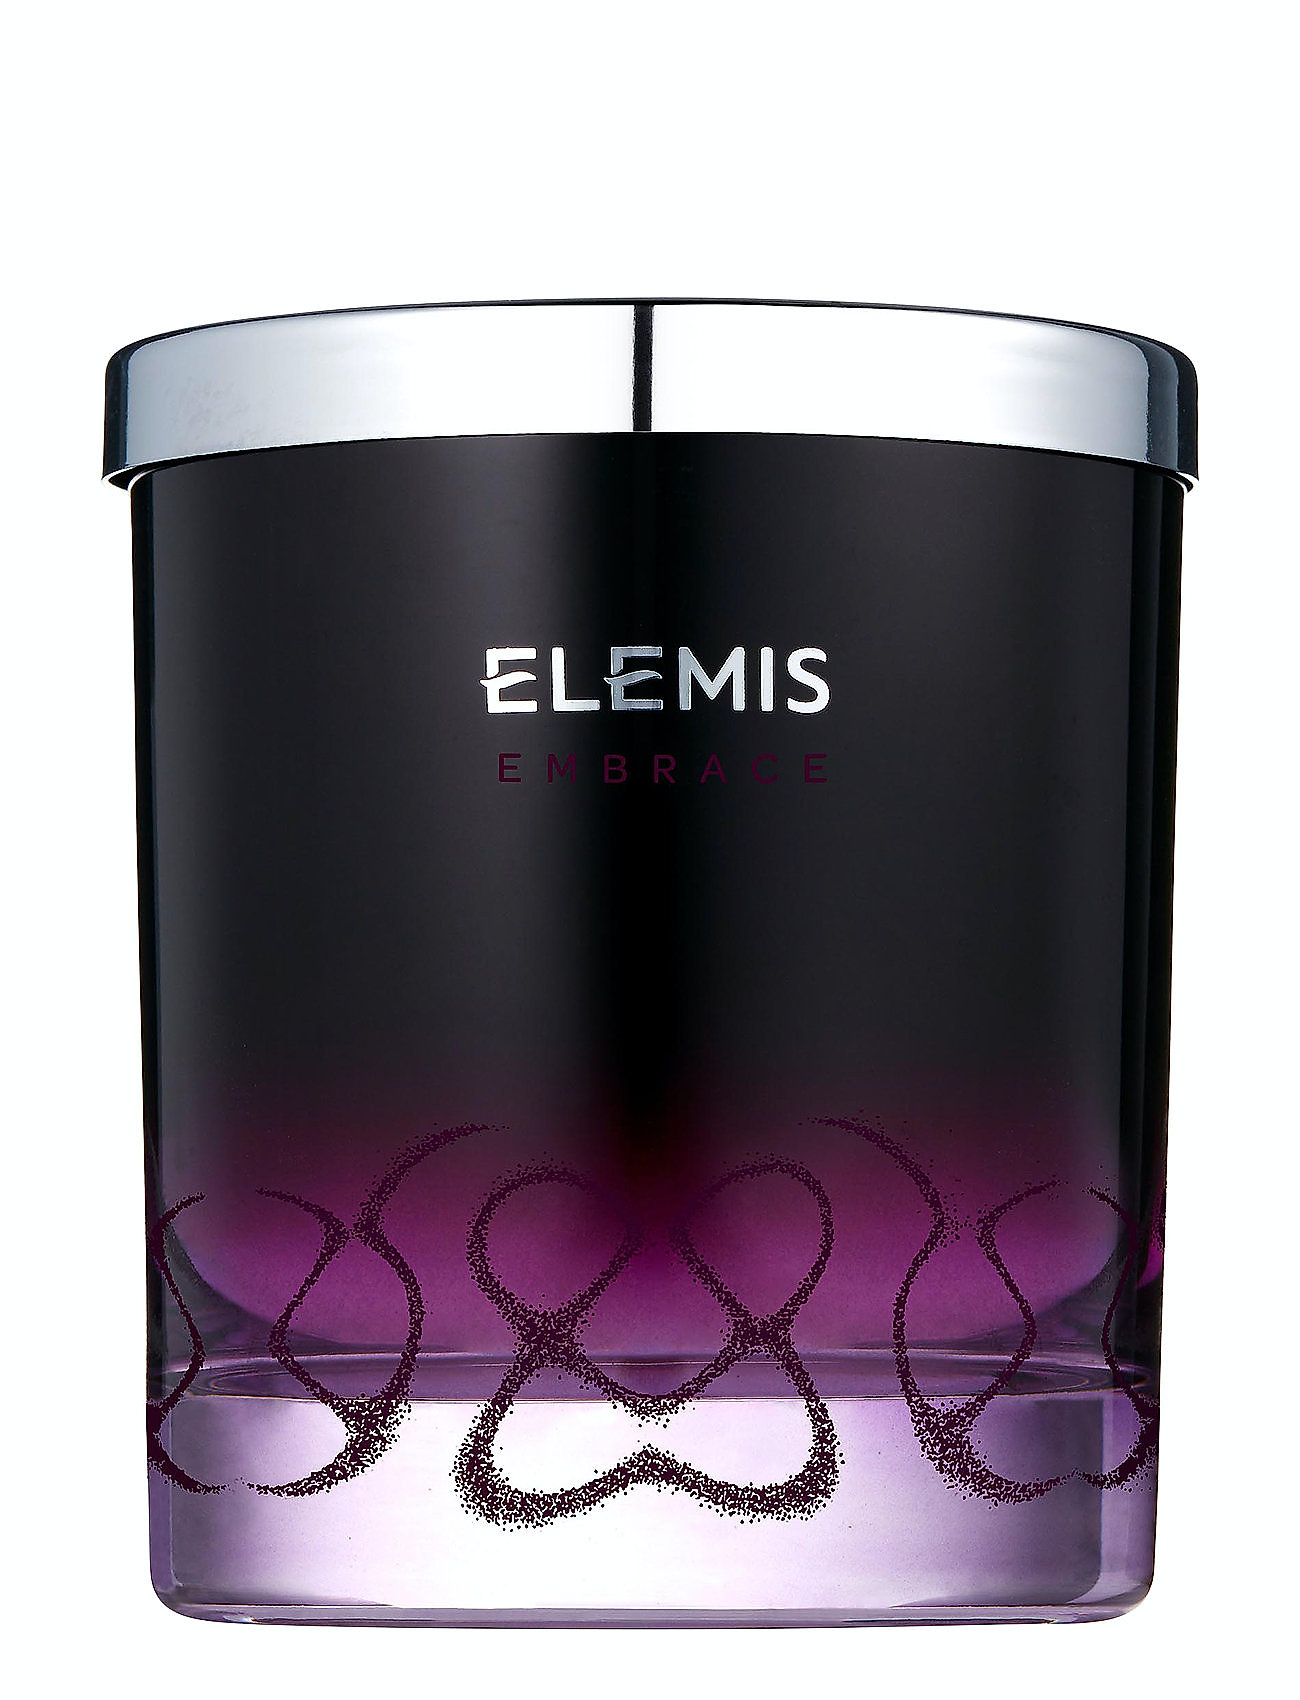 Elemis Embrace Bath & Shower Elixir - CLEAR